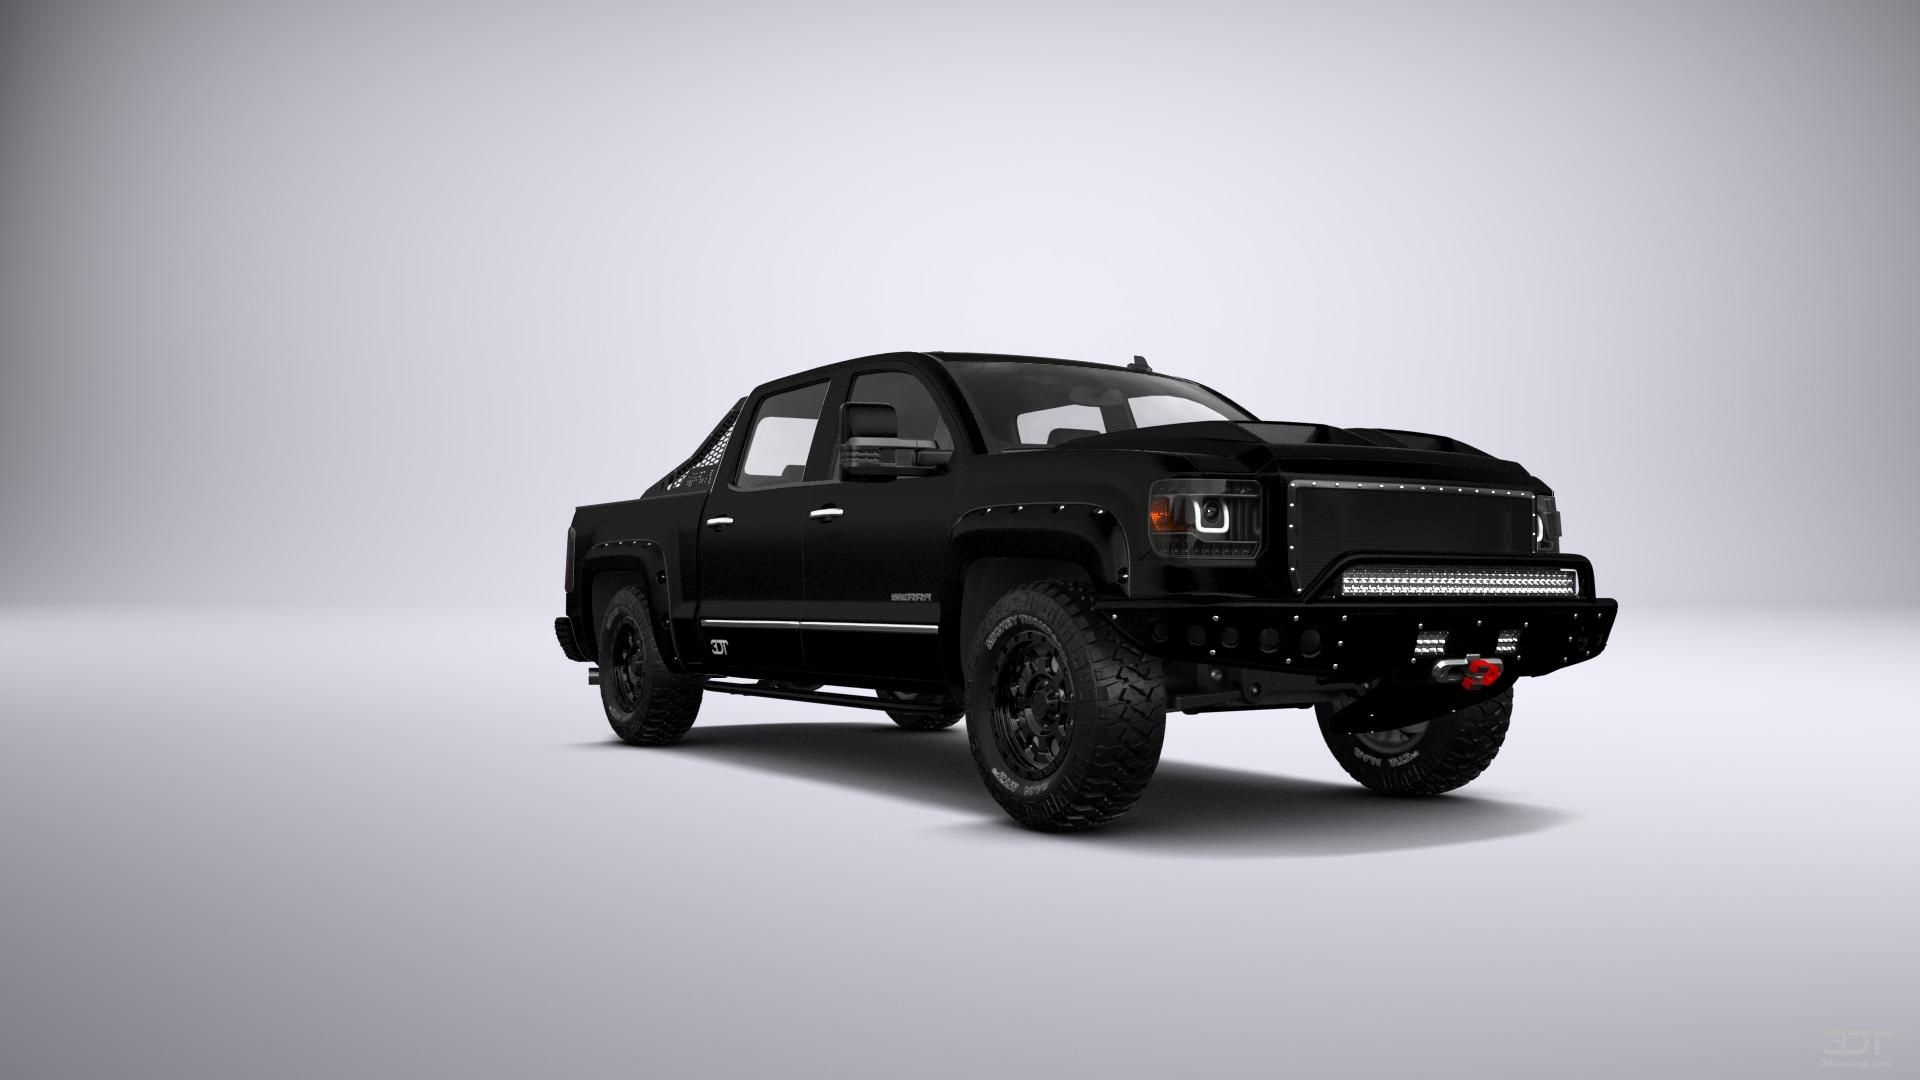 Checkout my tuning GMC Sierra 2014 at 3DTuning 3dtuning